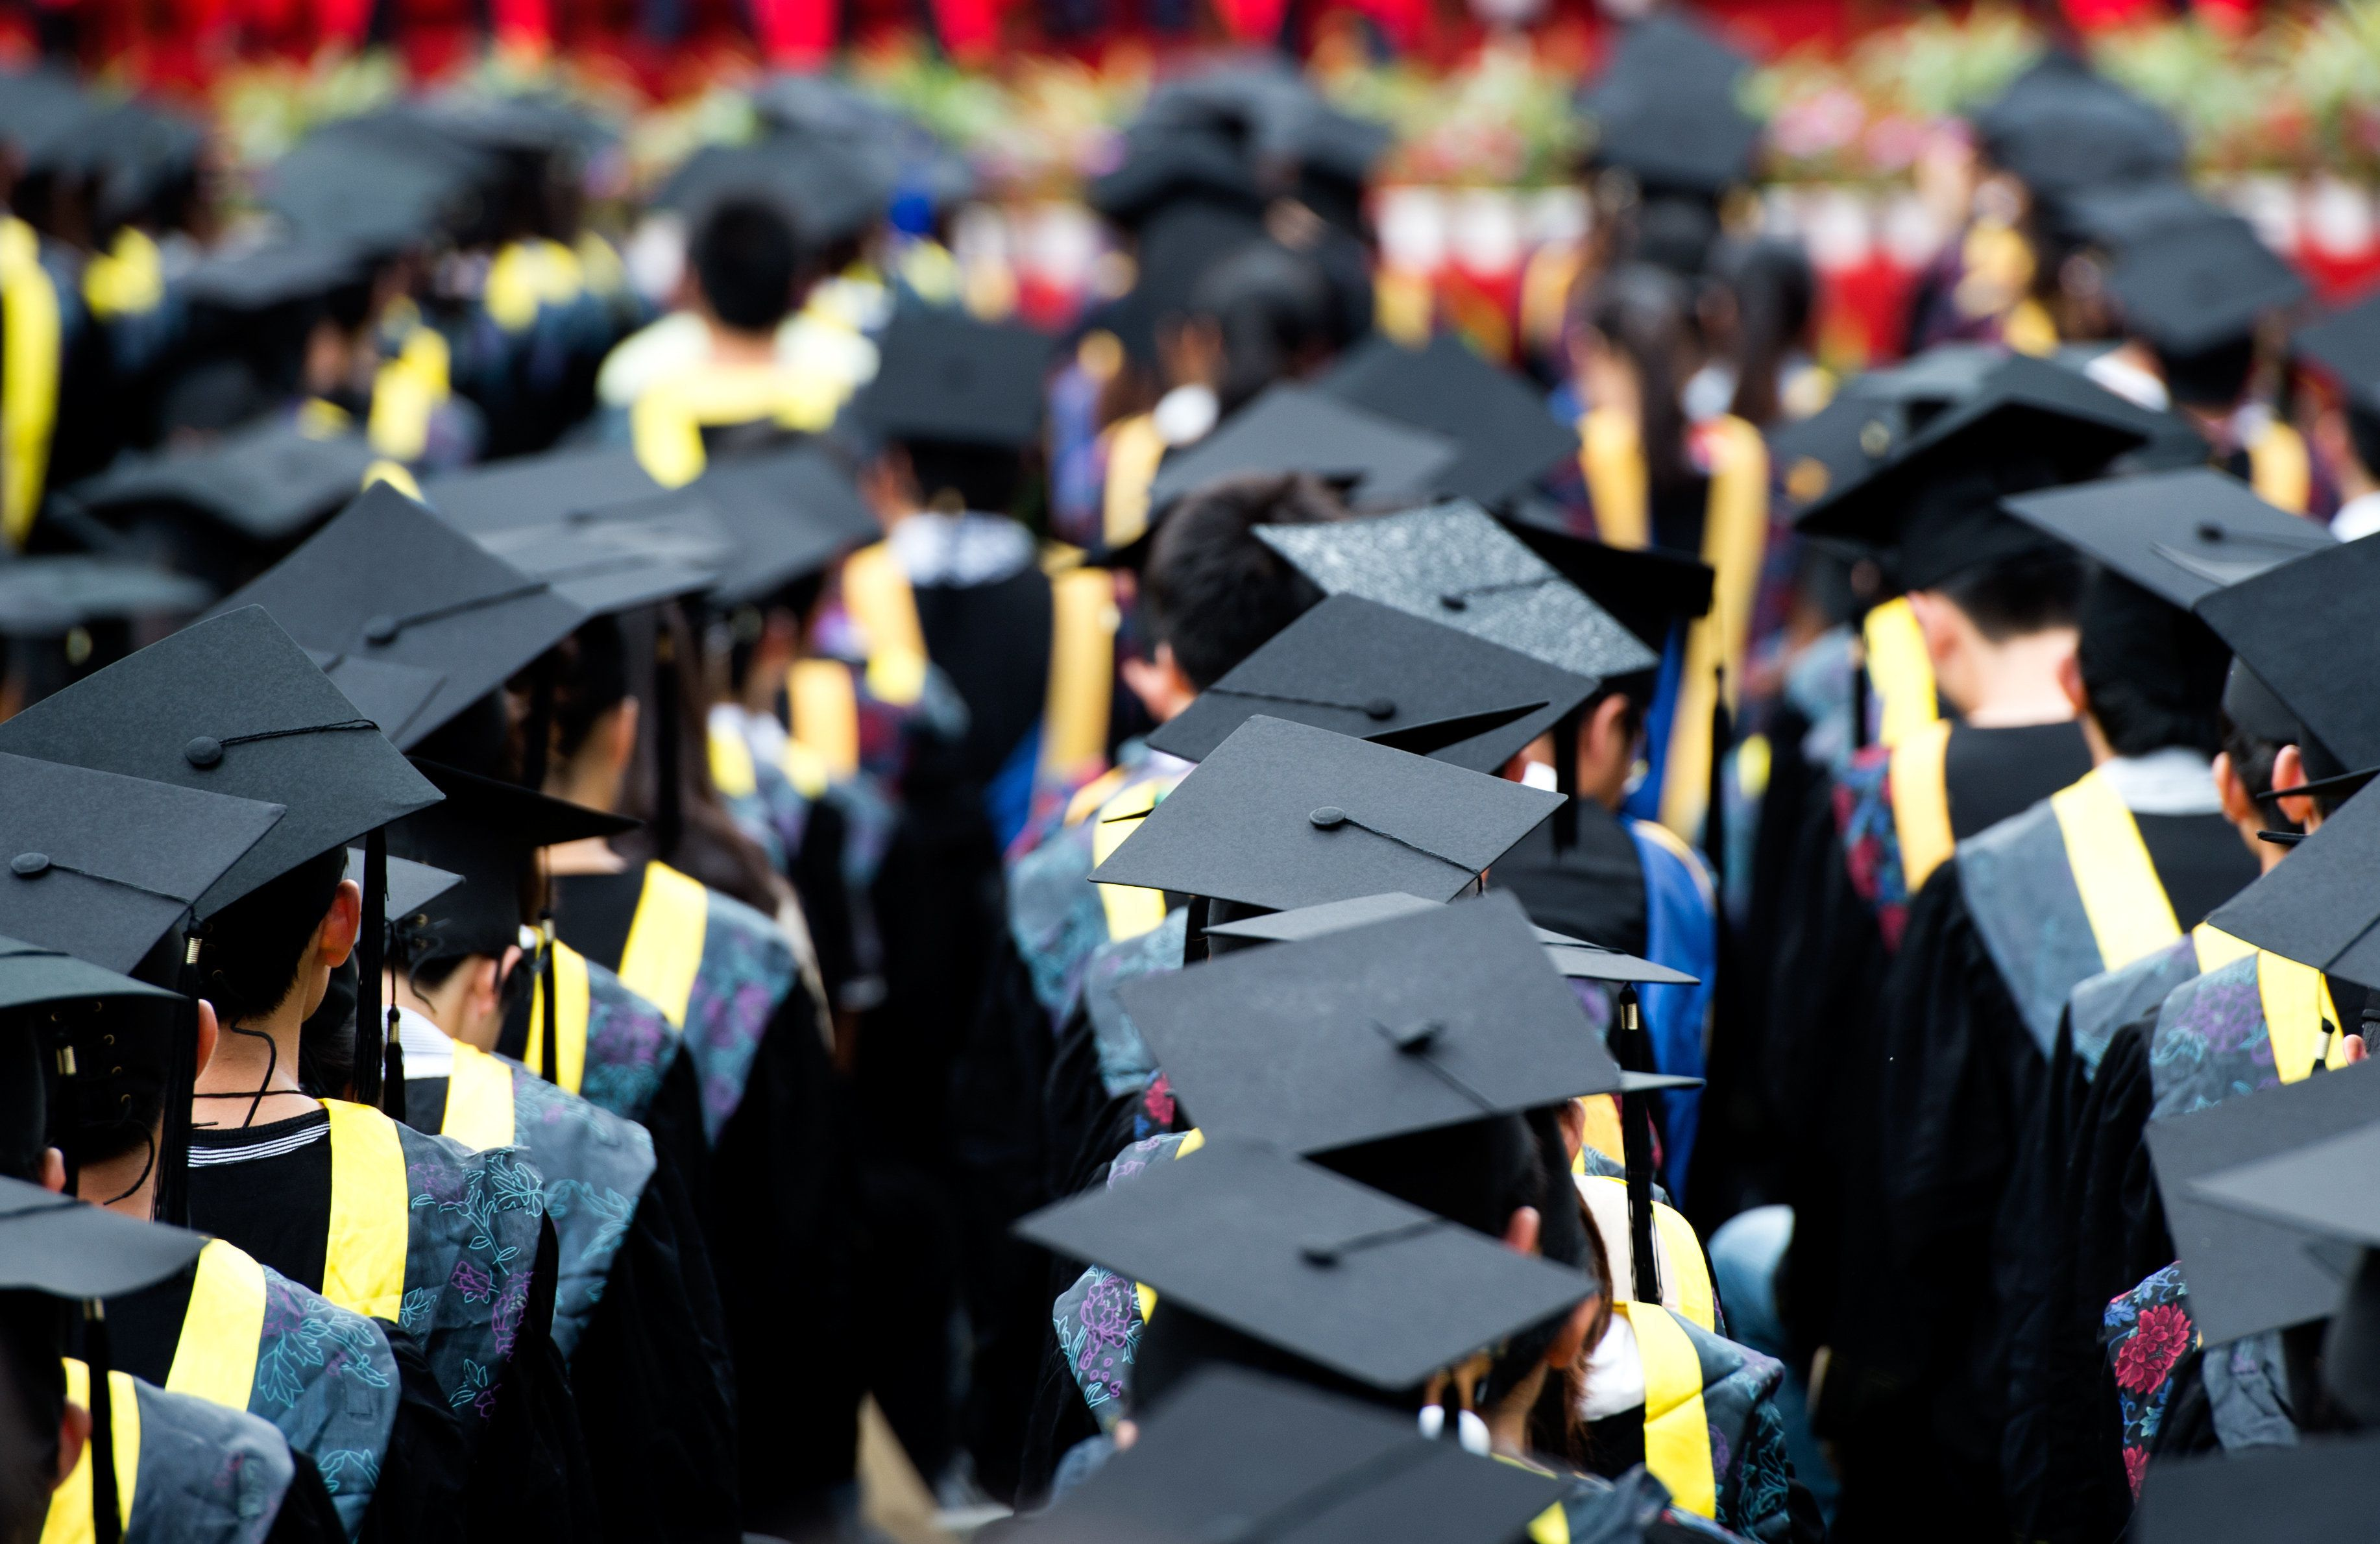 Employment records have exposed a shocking lack of representation at the top of the university